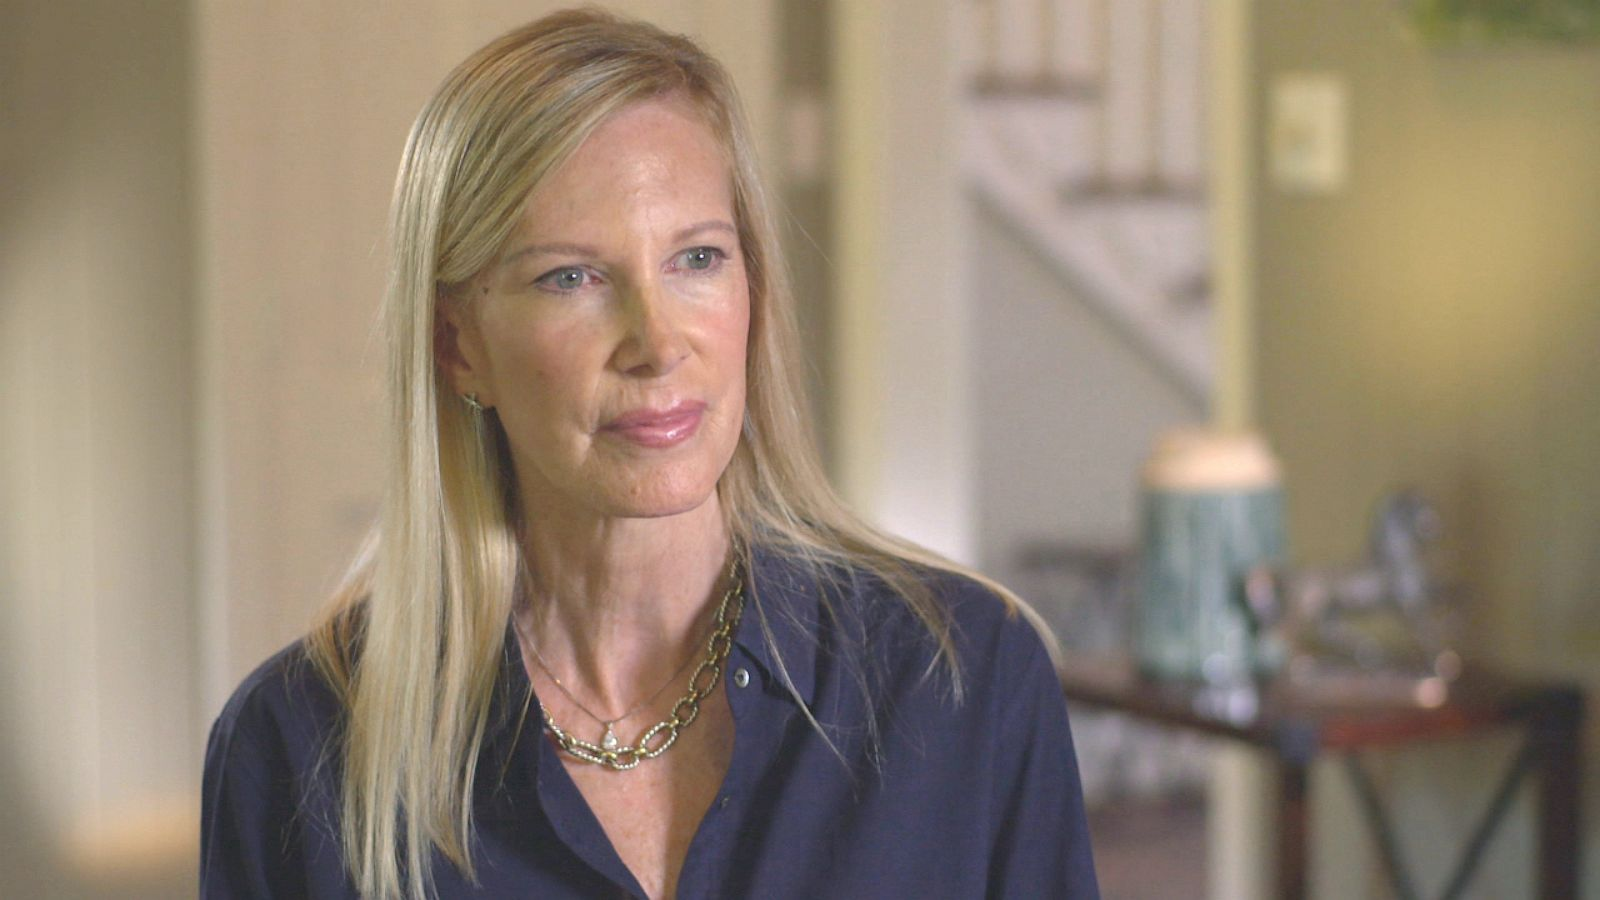 Natalee Holloway S Mother On Her Nearly 15 Year Journey To Find